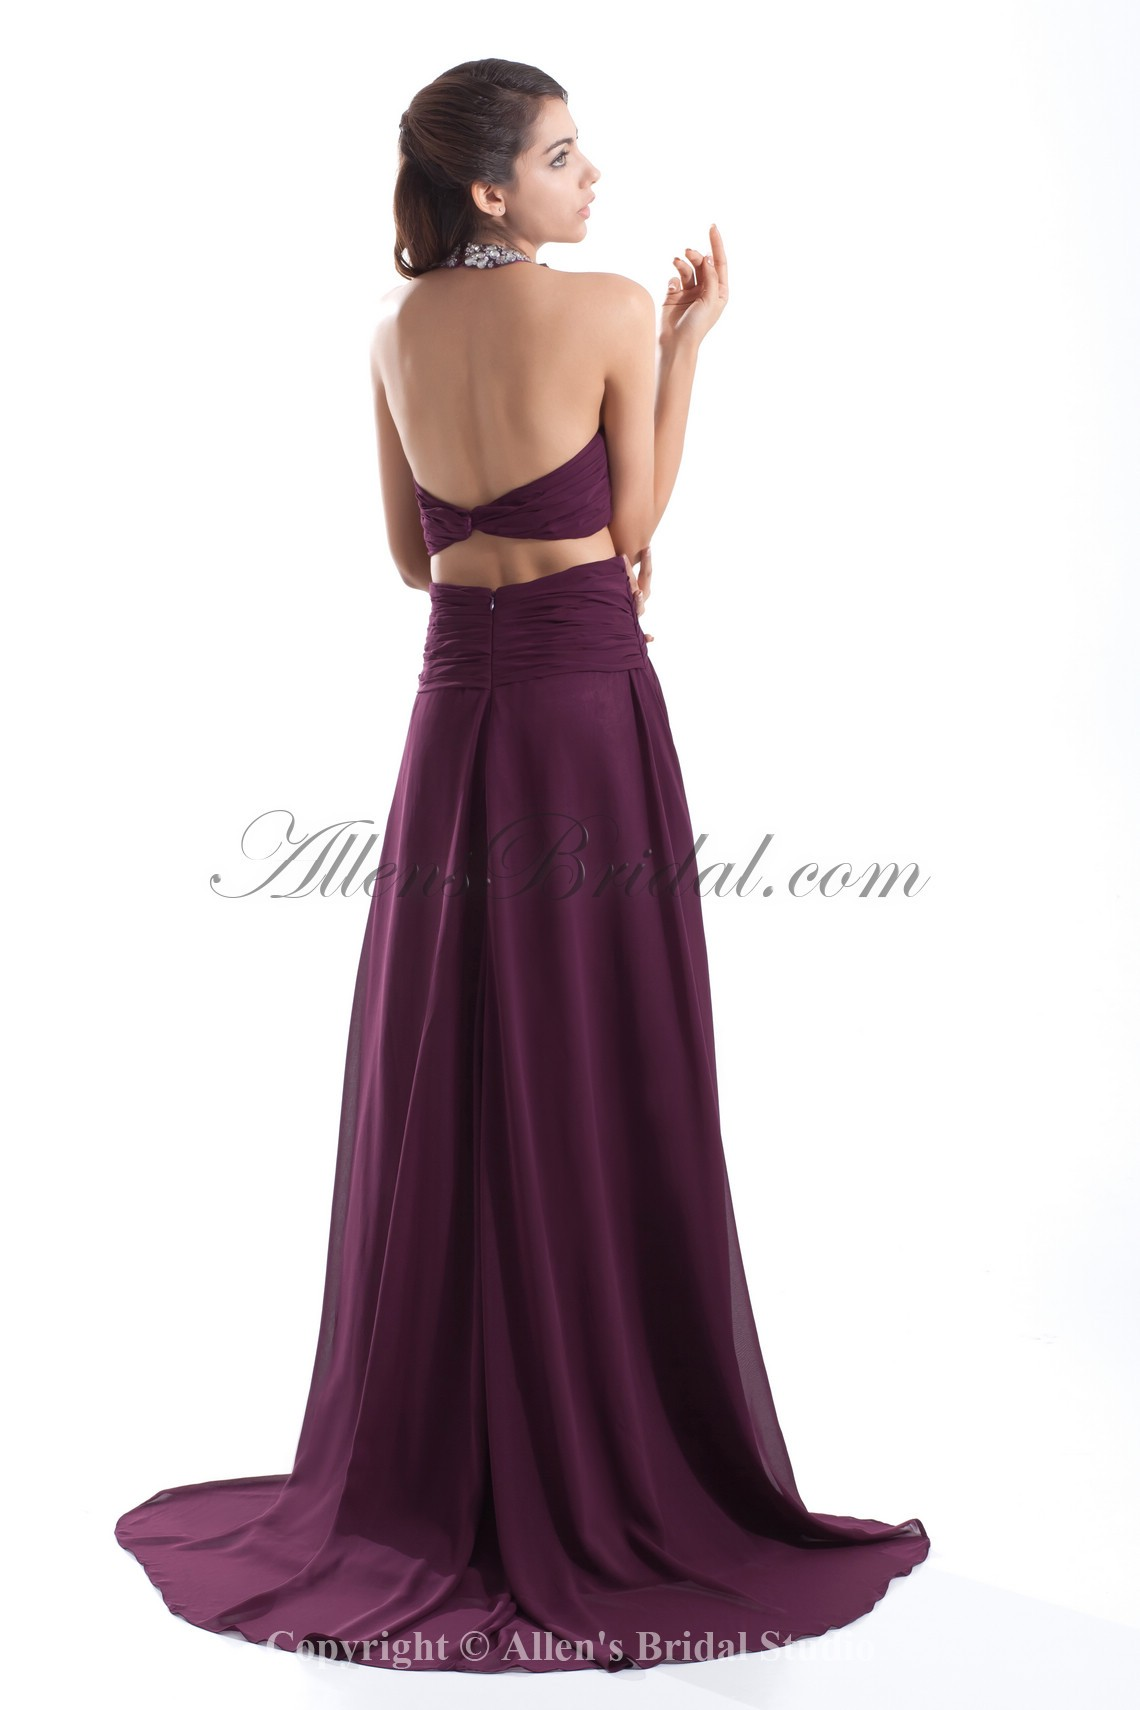 /664-5324/chiffon-halter-neckline-sweep-train-a-line-sequins-prom-dress.jpg